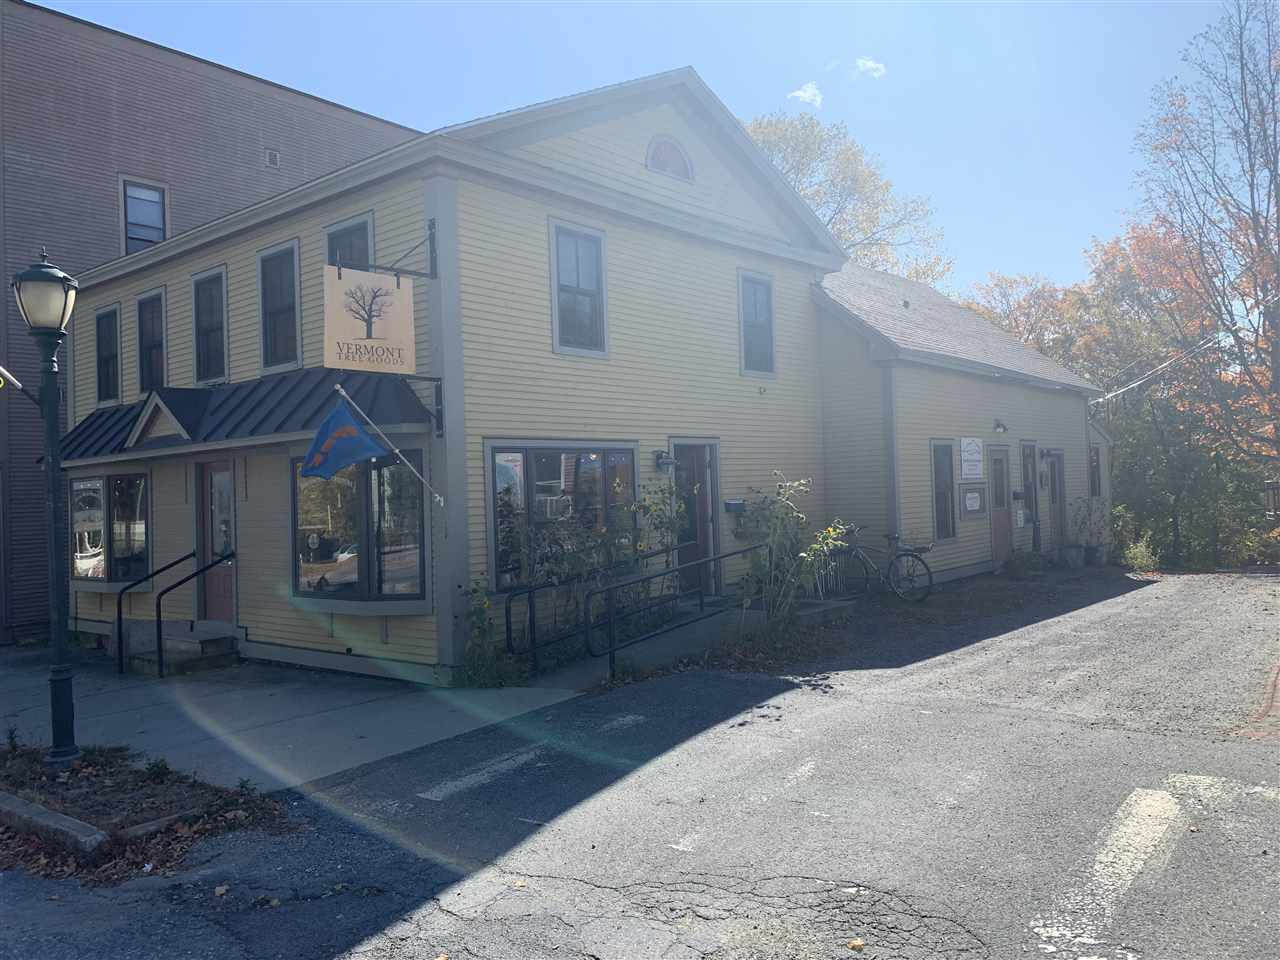 Ideal Main Street Bristol village location with this stand alone mixed business building.